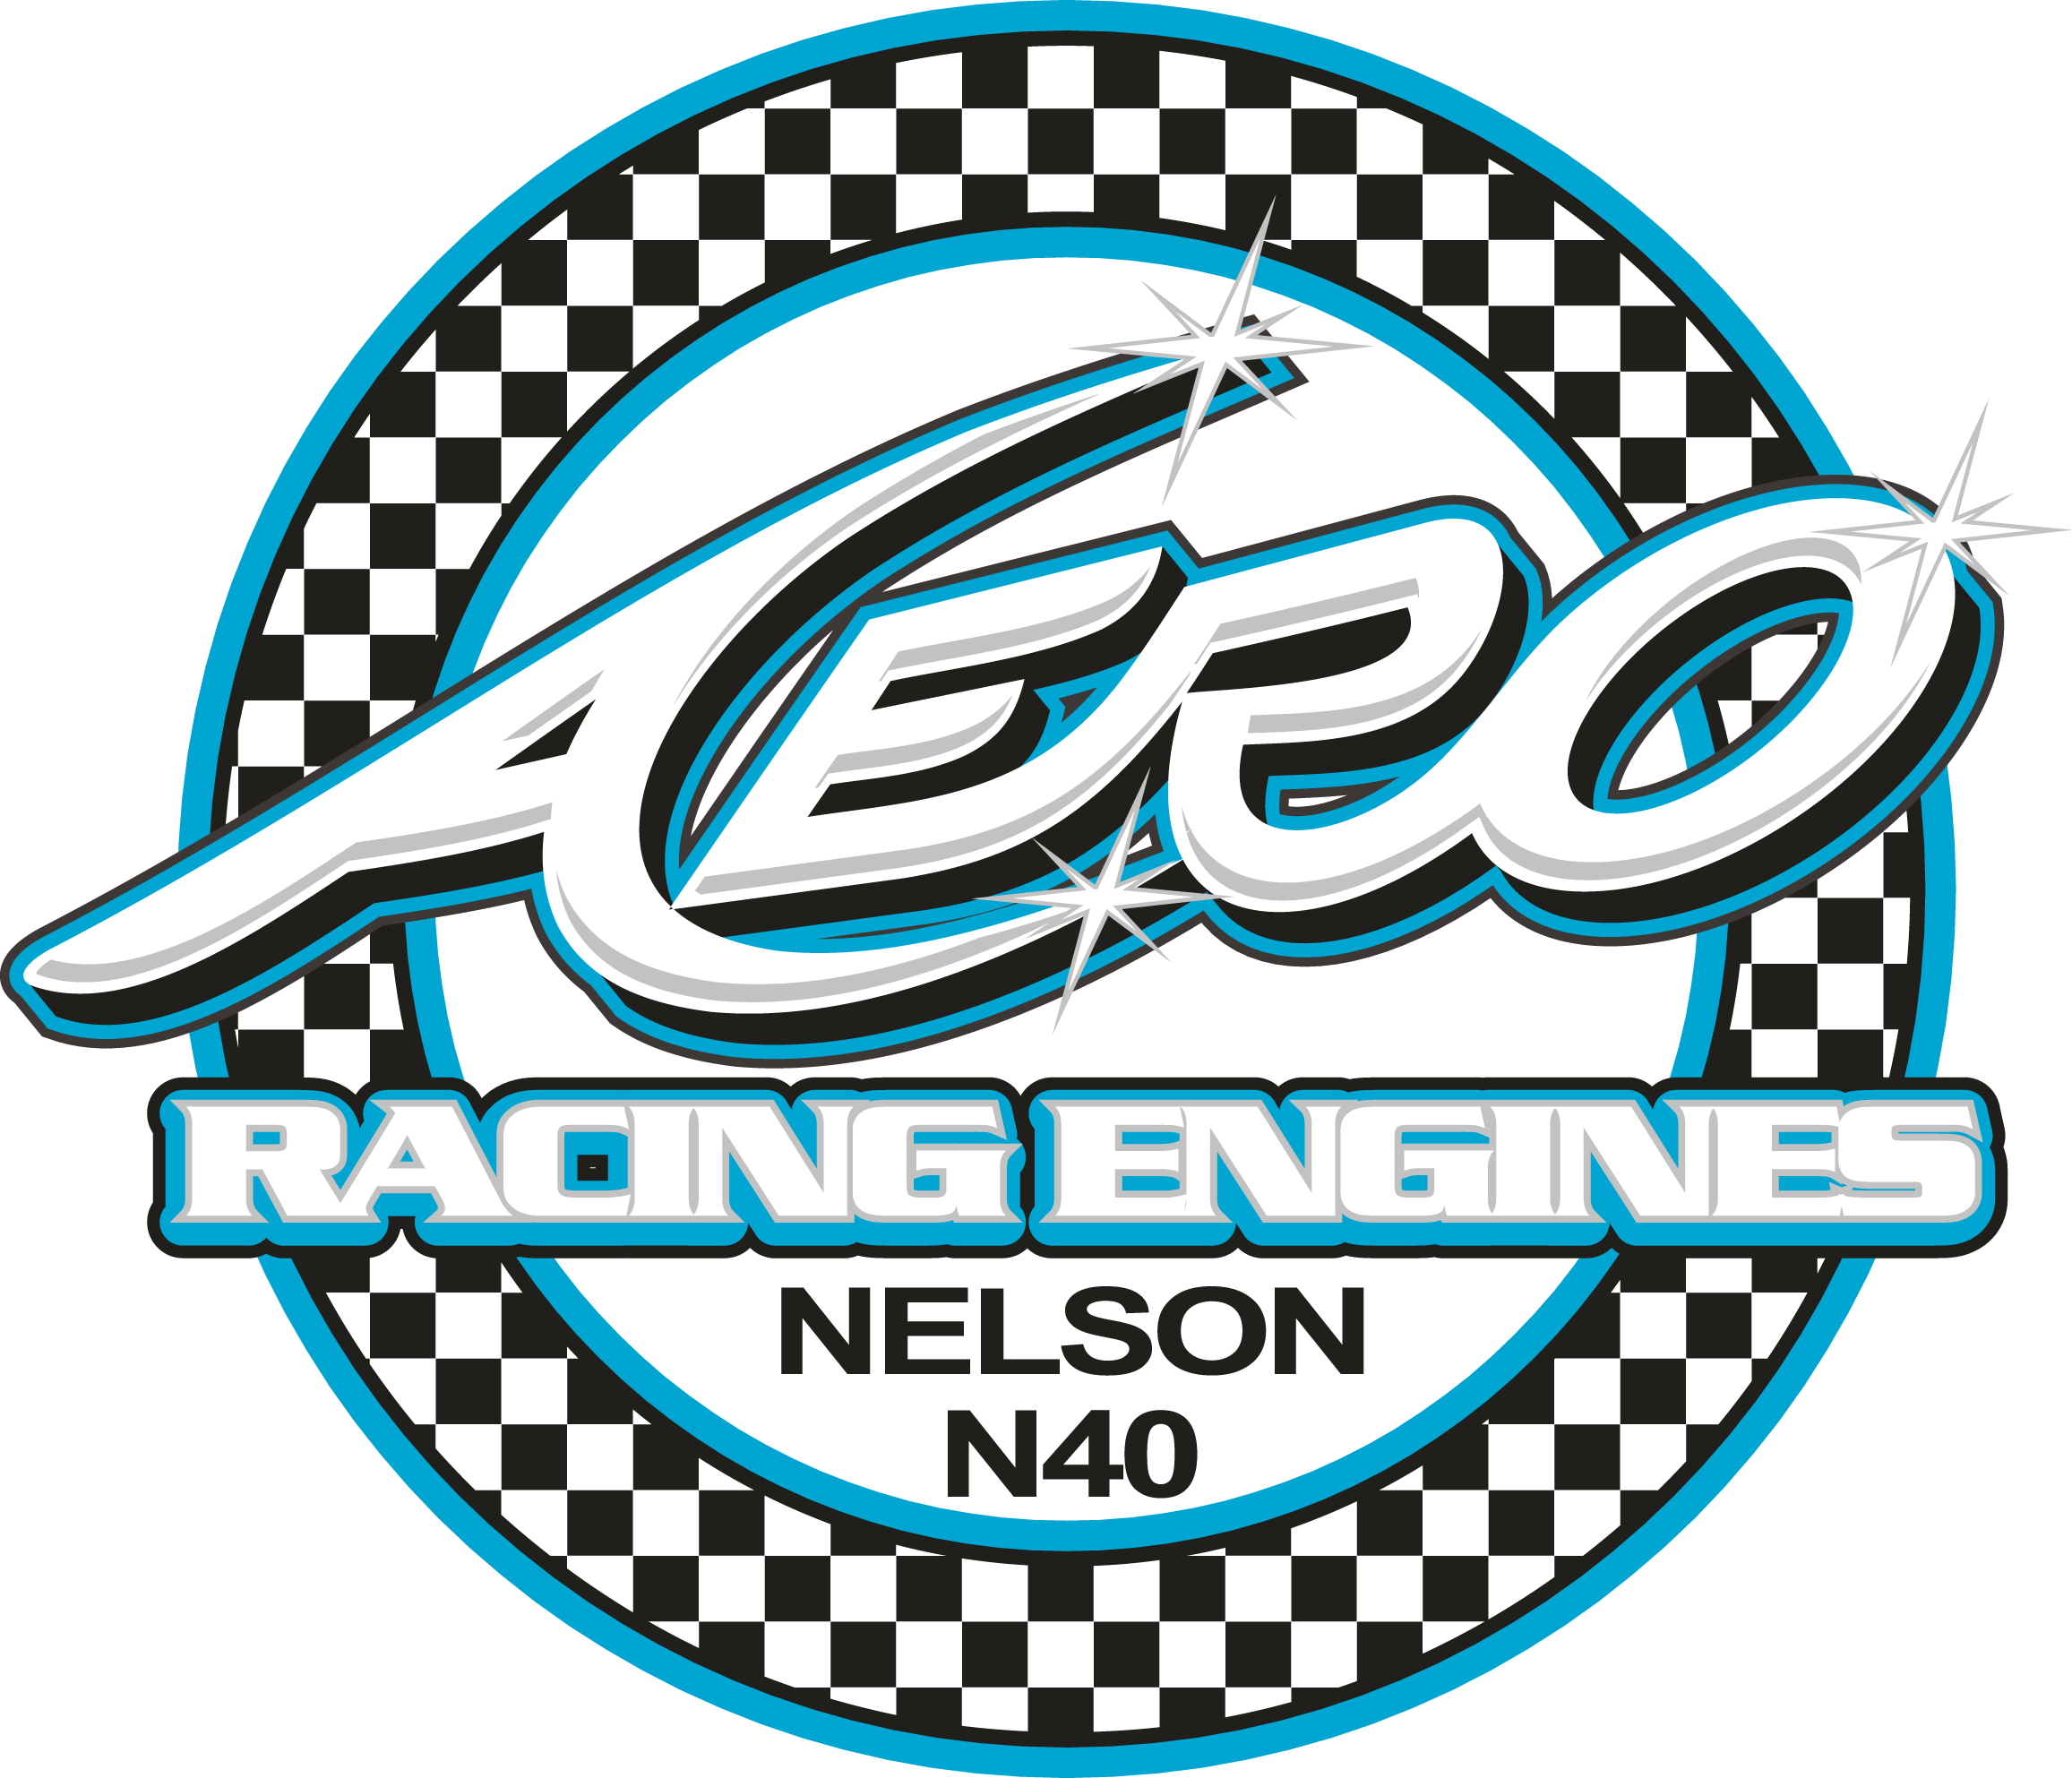 aero racing engines